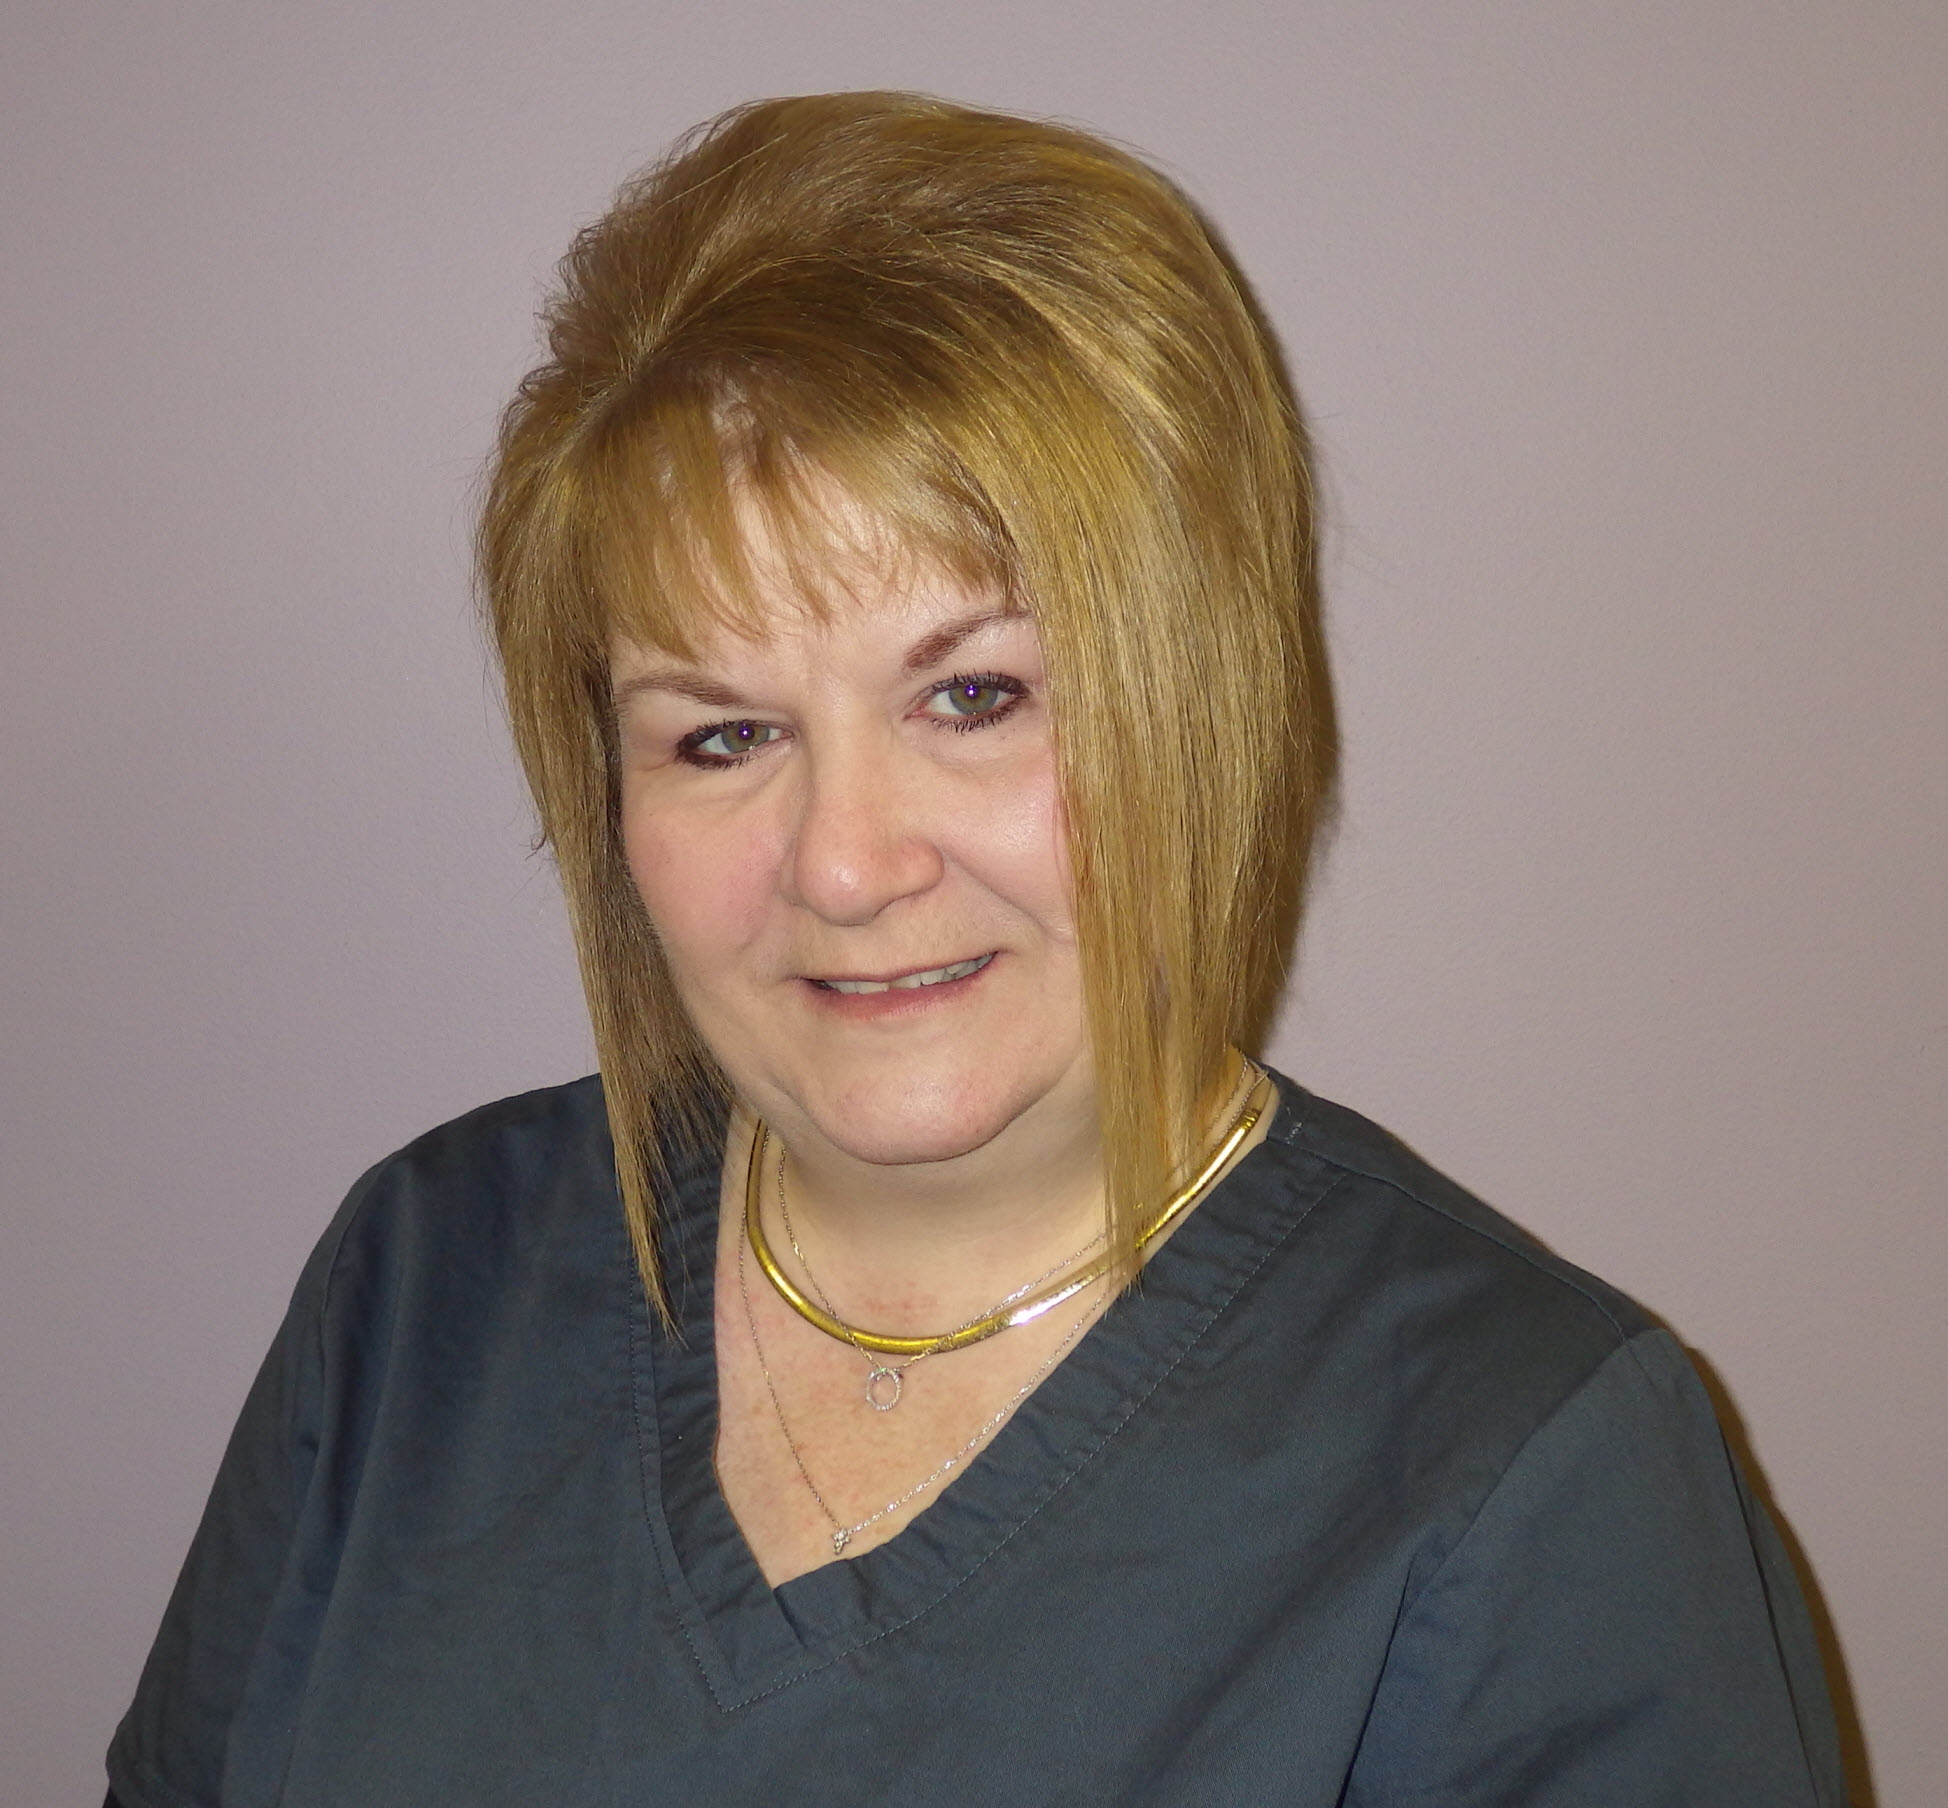 Jean Front Desk Trudy Amstadt DDS